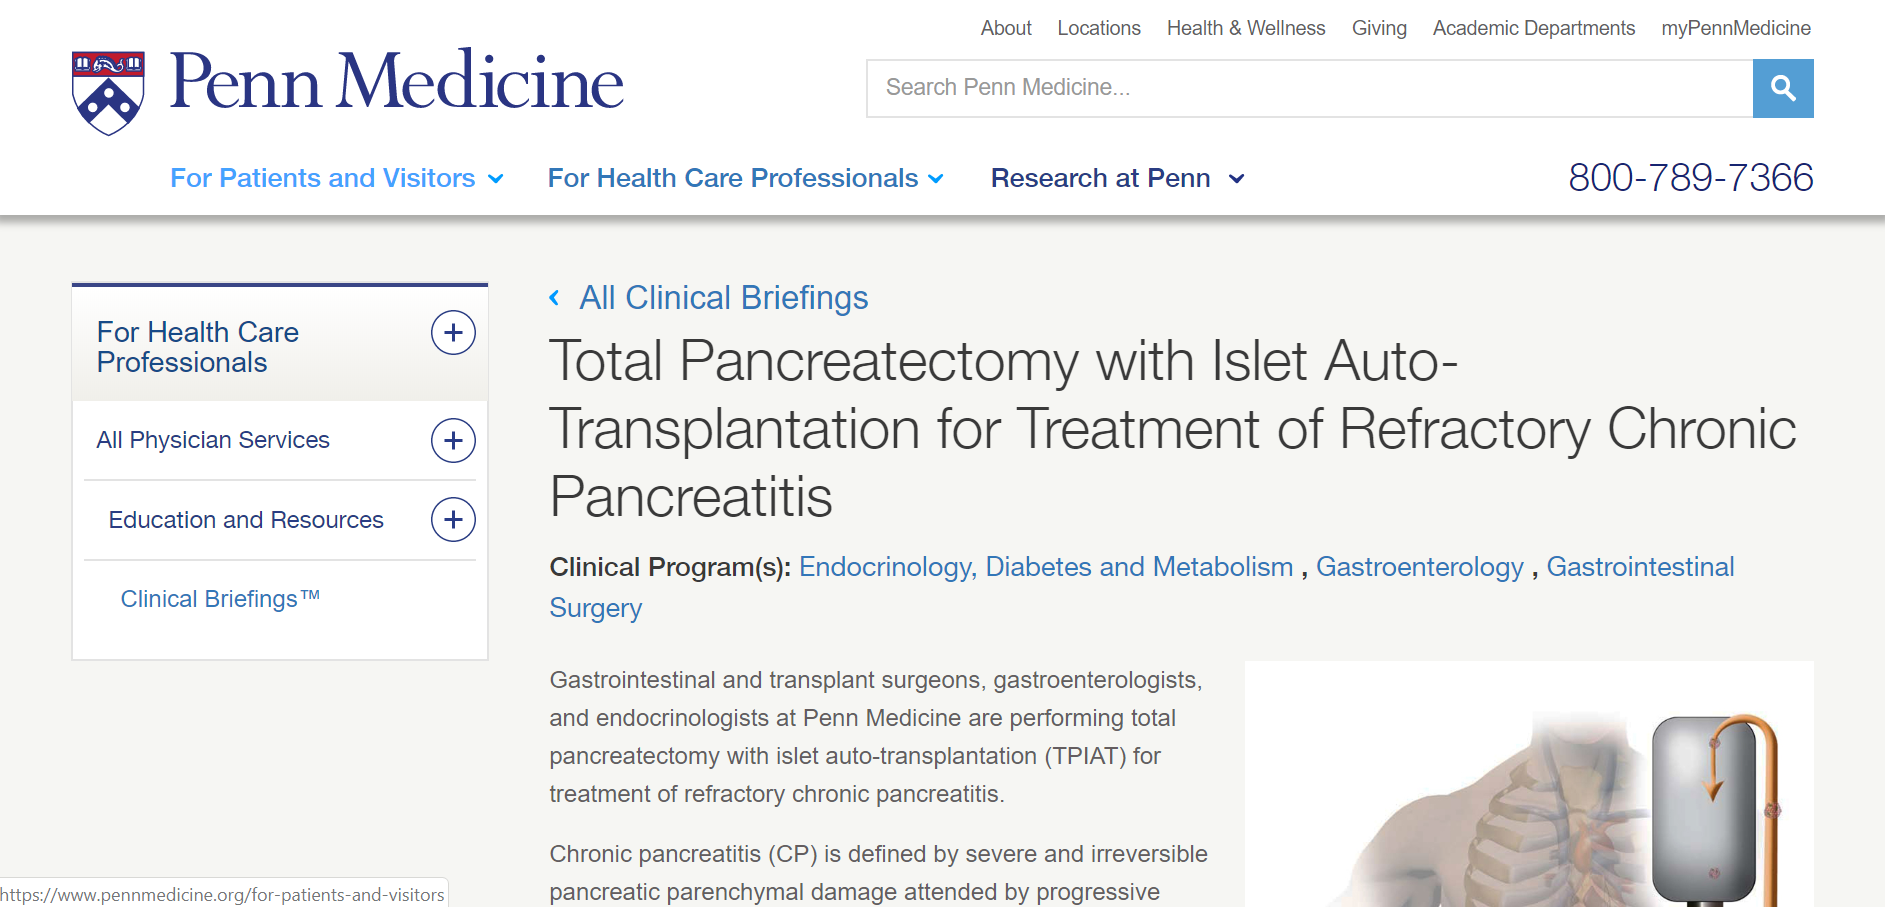 Penn Medicine, Total Pancreatectomy with Islet Auto-Transplantation for Treatment of Refractory Pancreatitis, Clinical Program for Diabetes